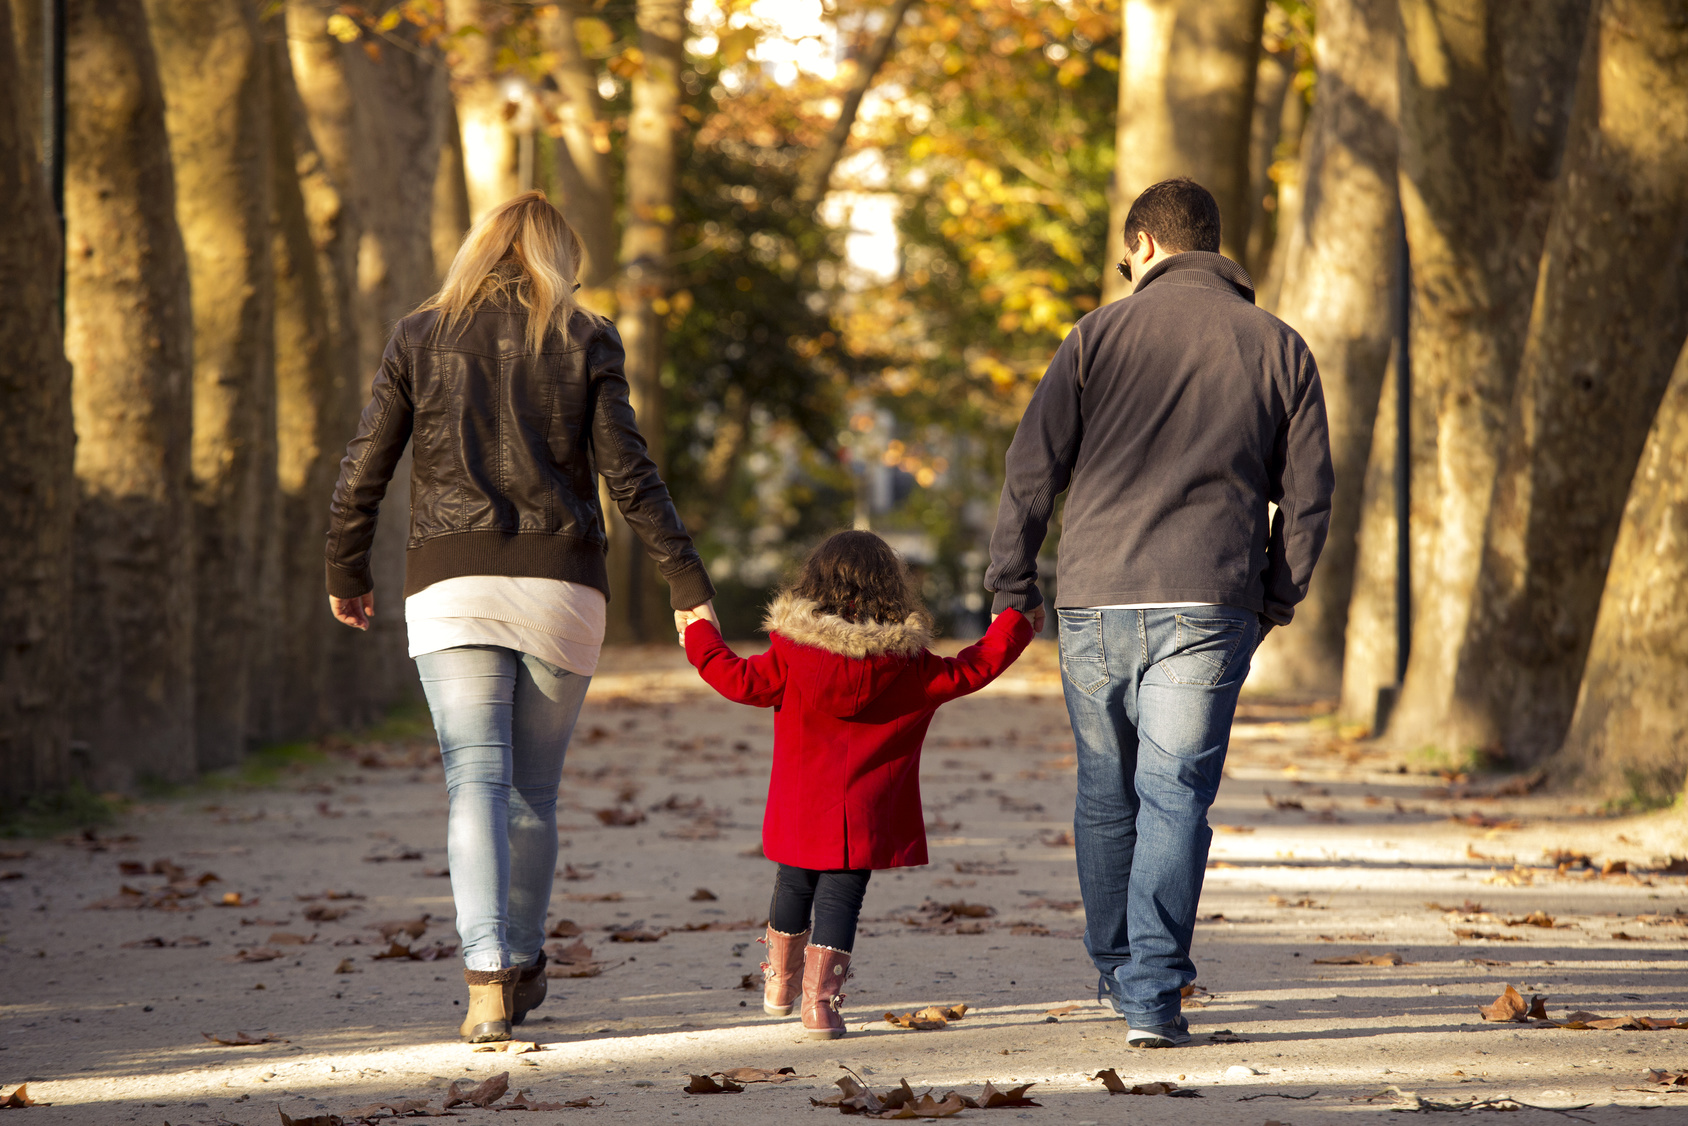 Outdoor portrait of a happy family walking together and enjoying the fall season